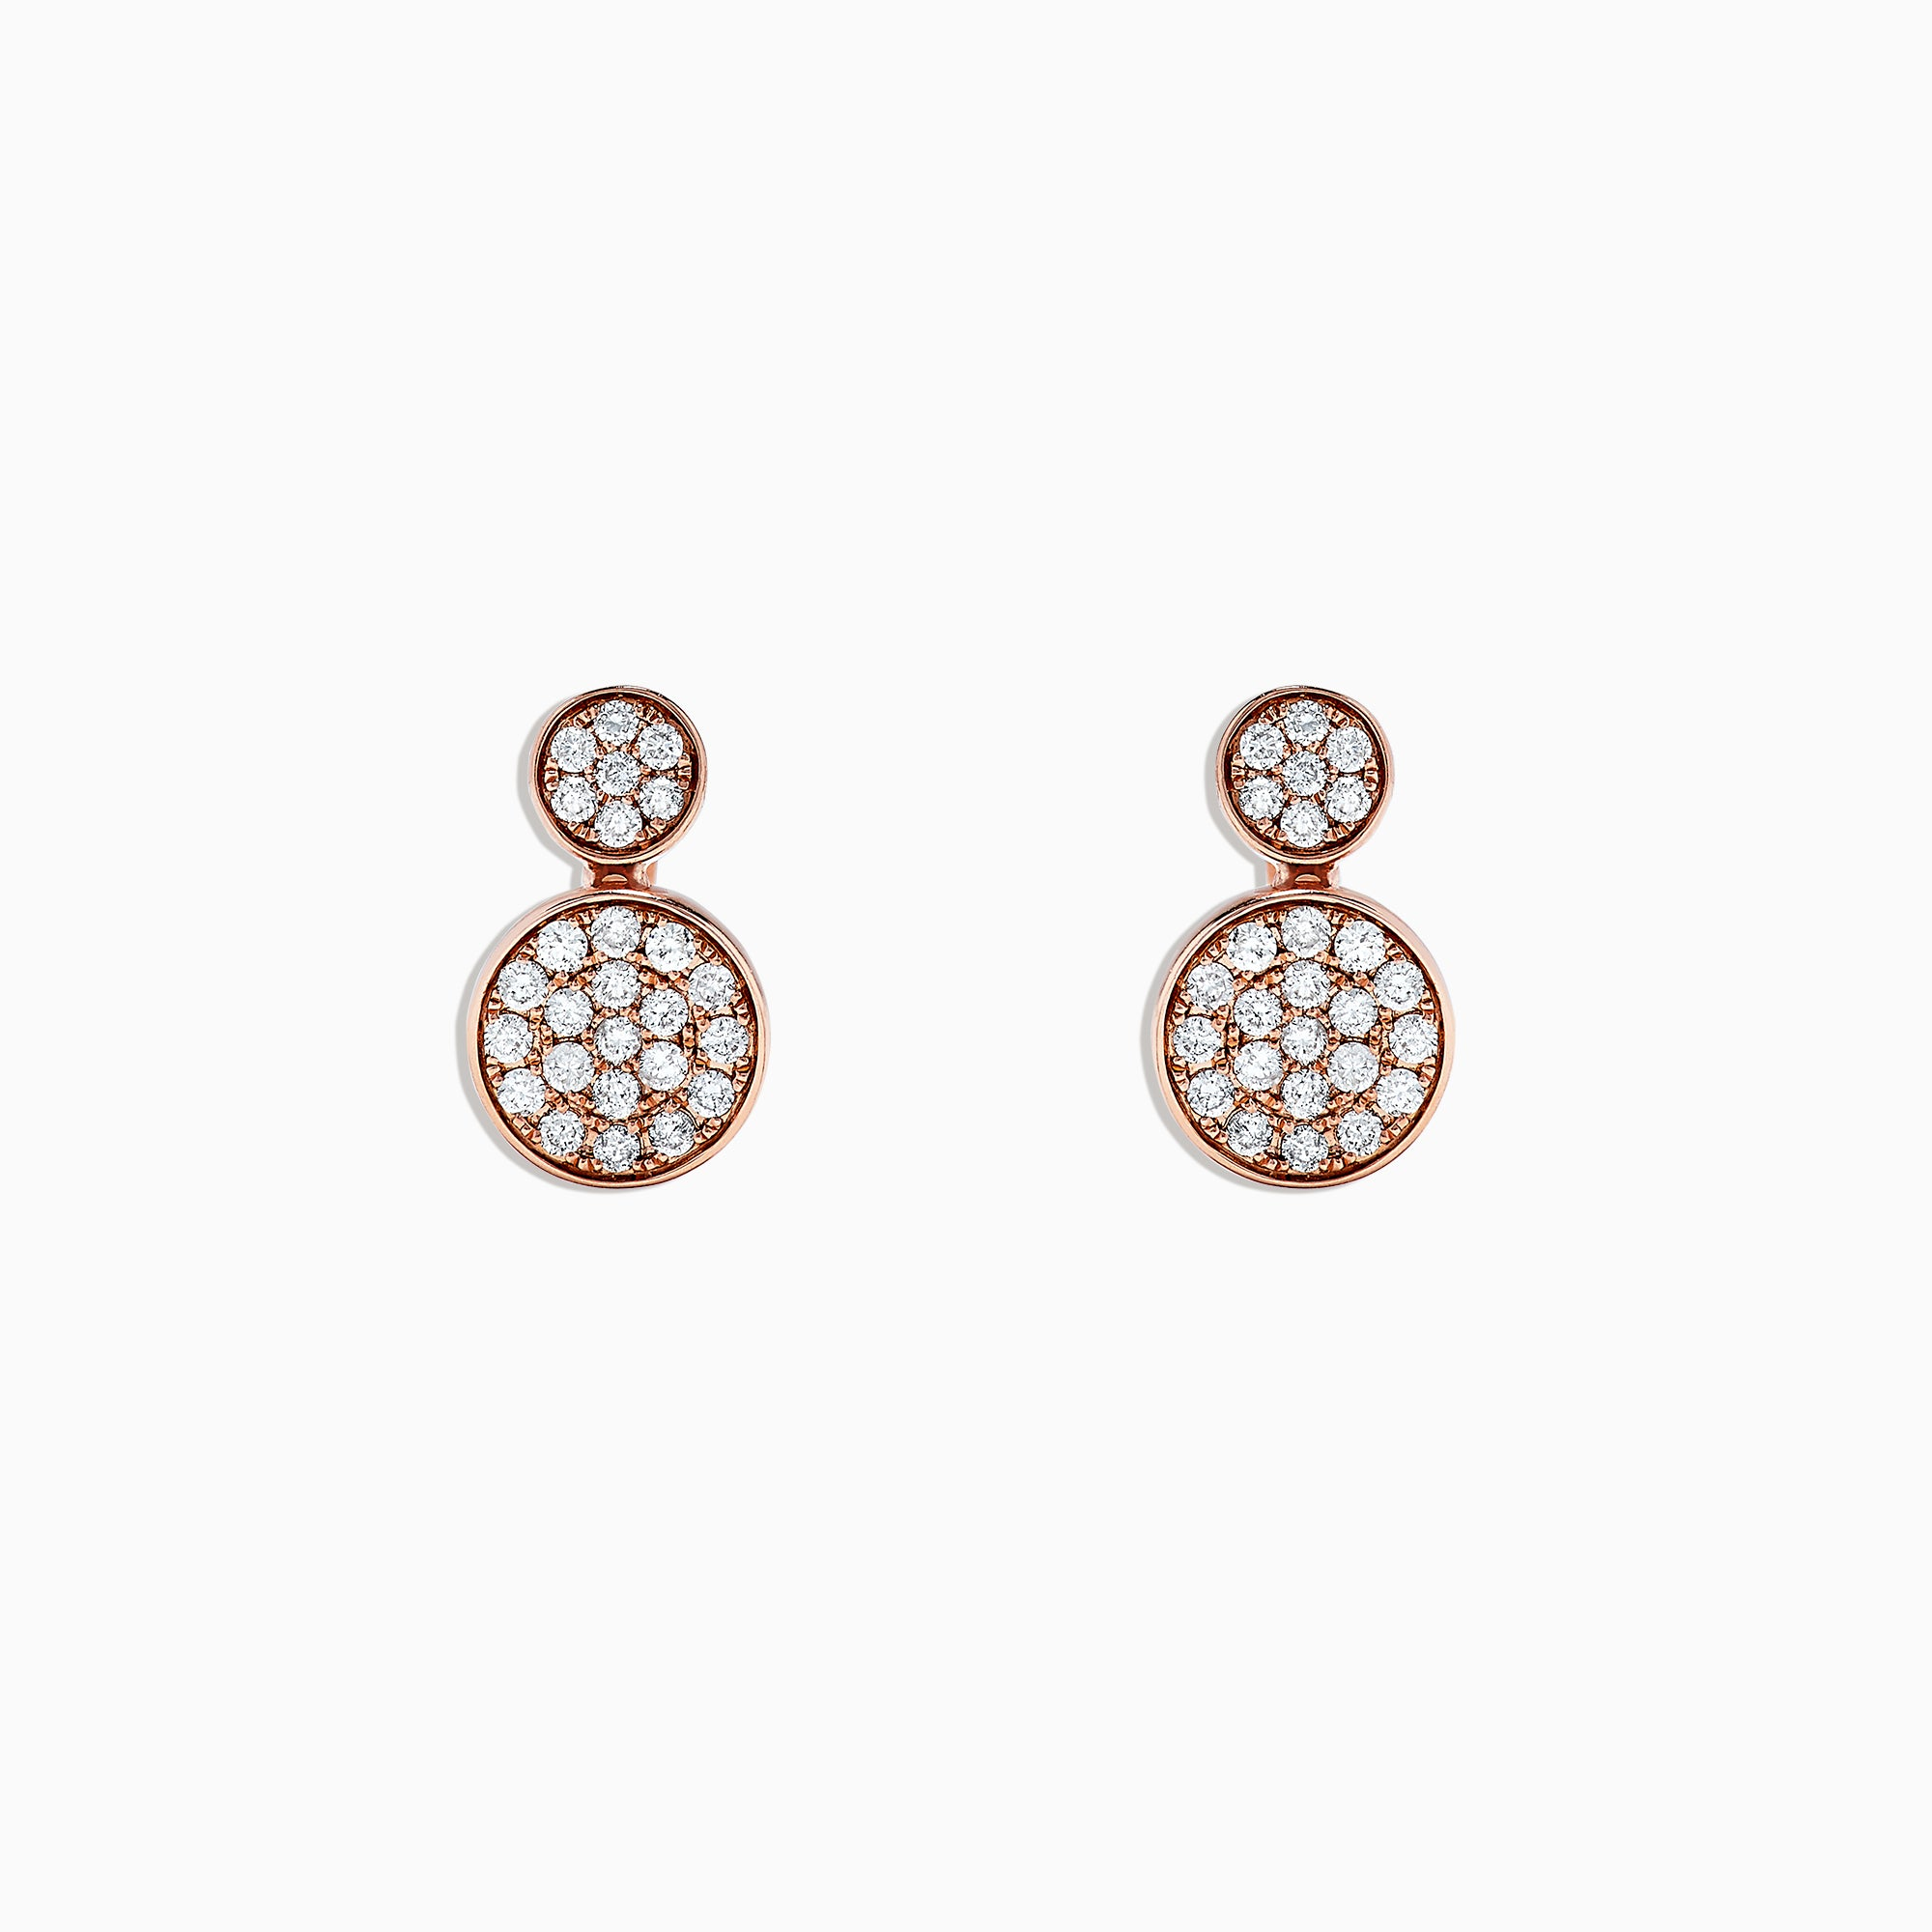 Effy 14K Rose Gold Diamond Pave Earrings, 0.73 TCW